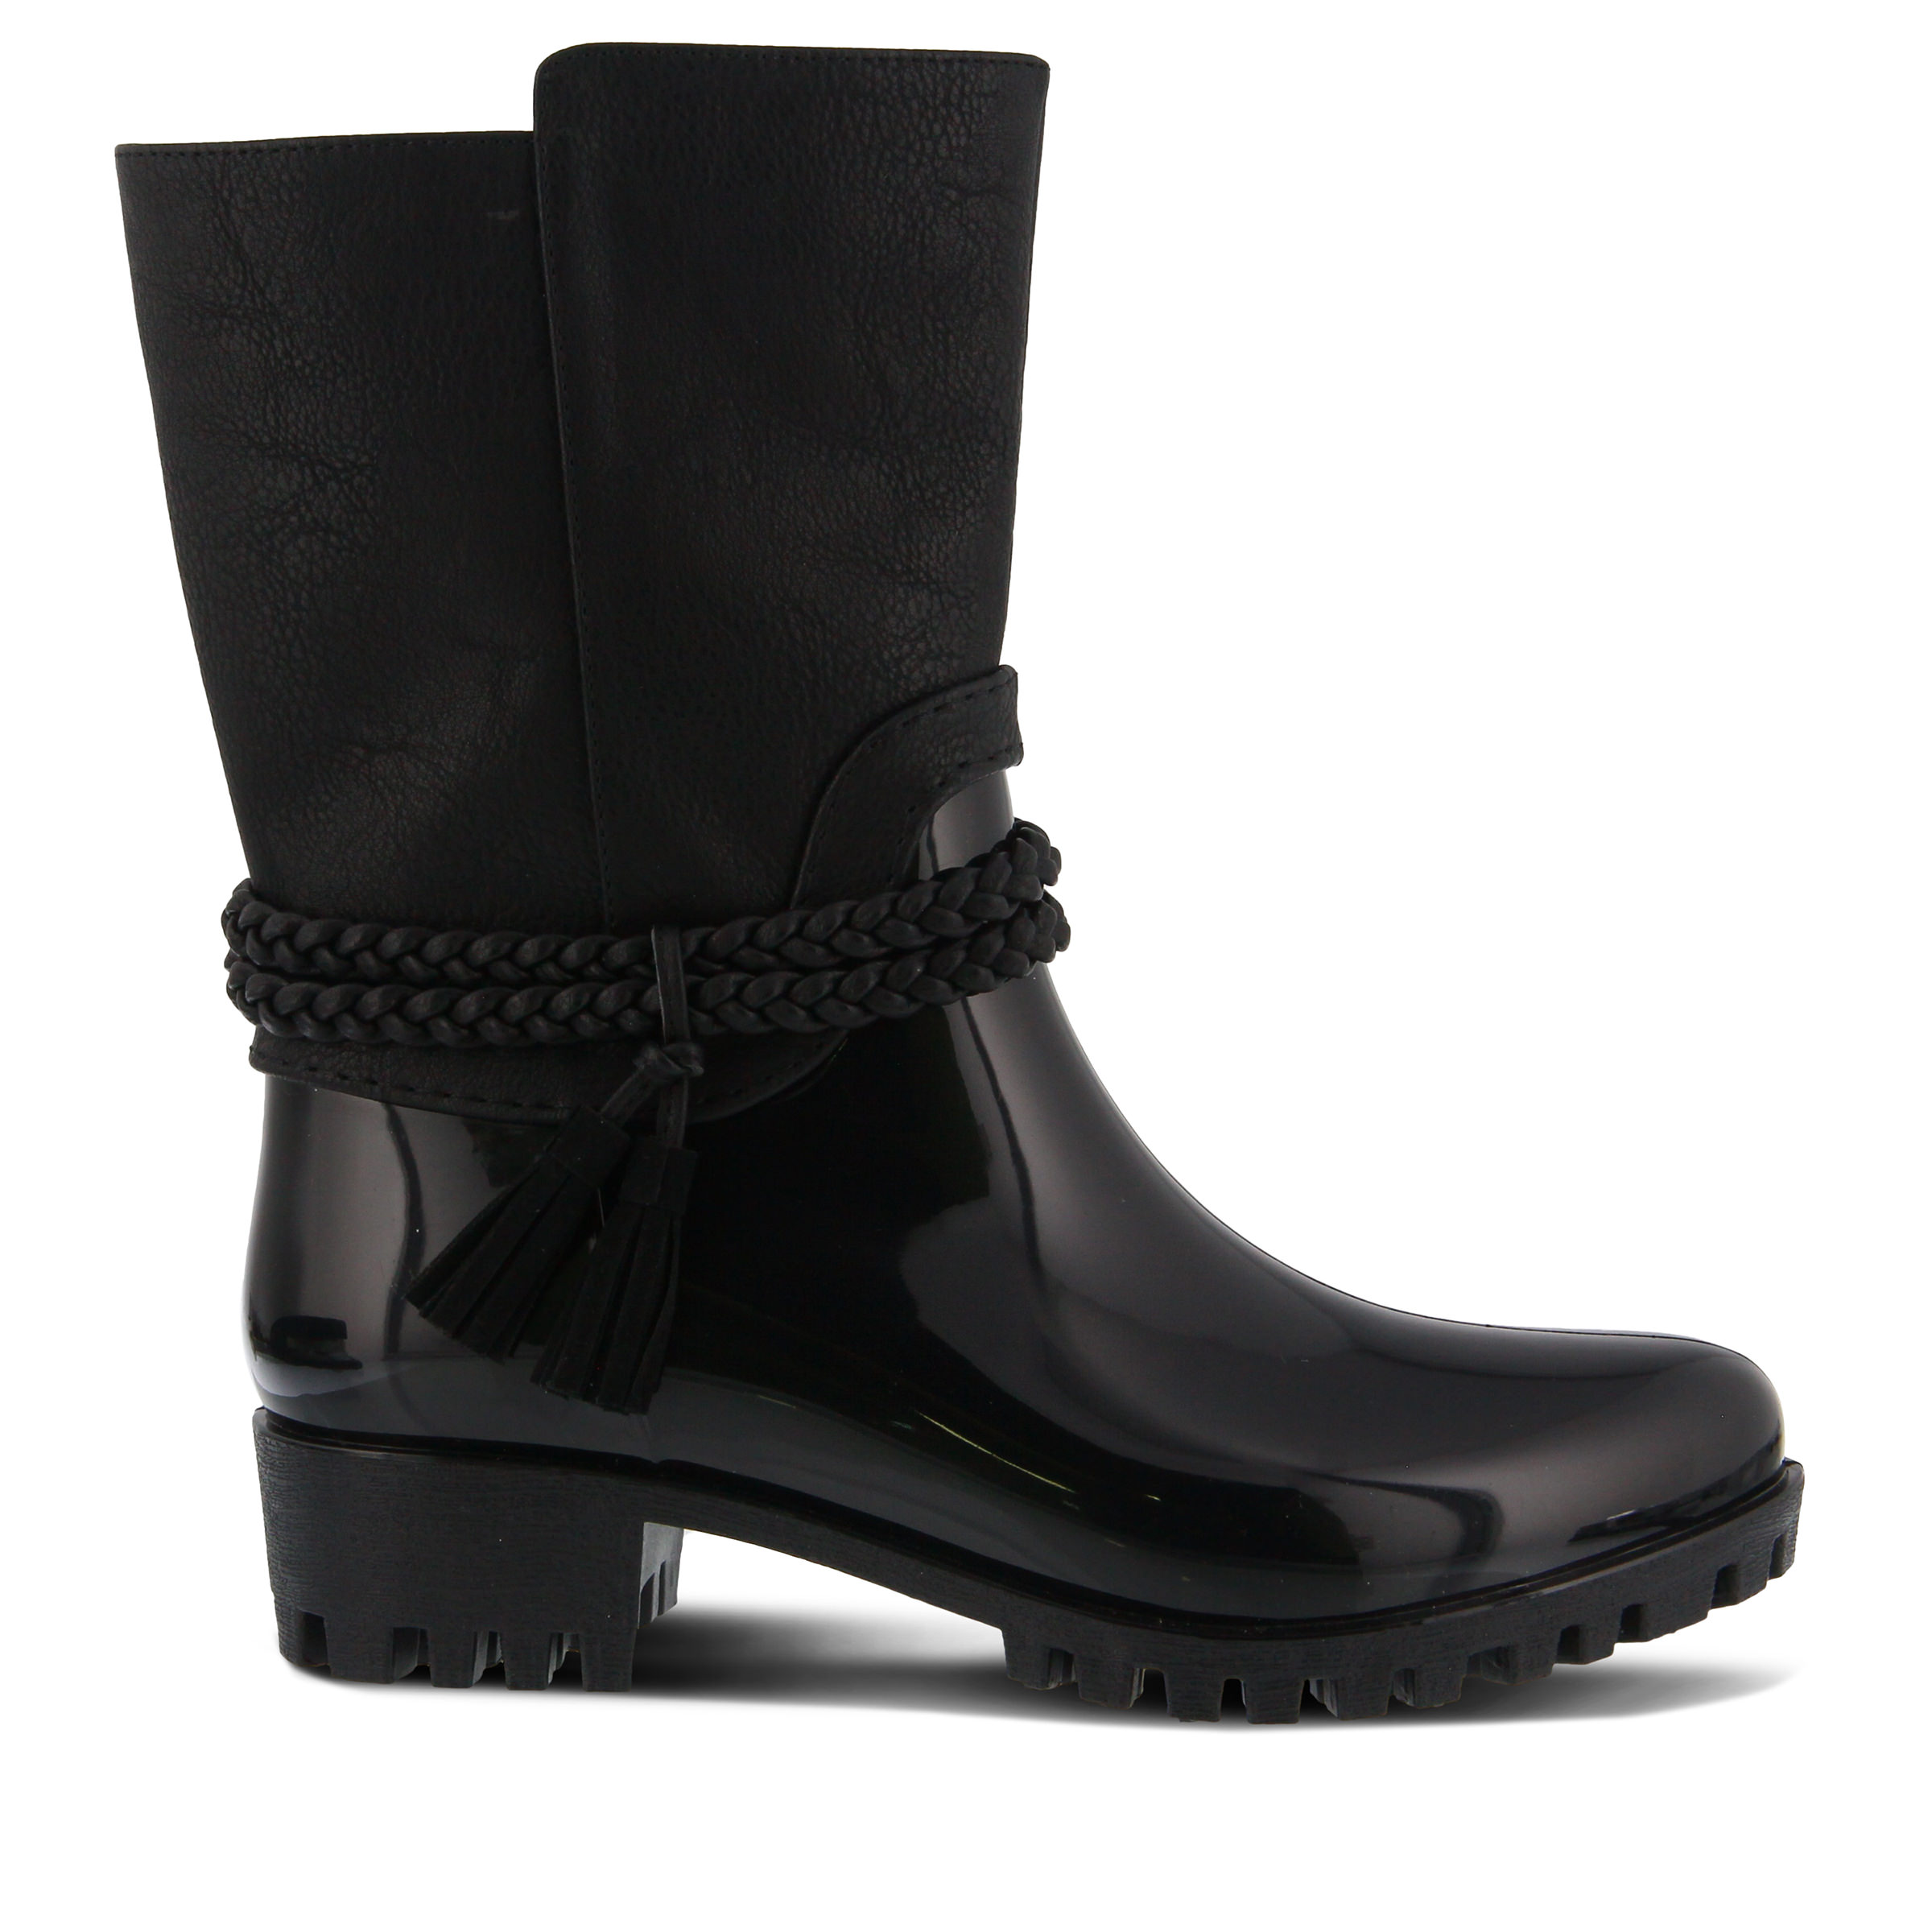 SPRING STEP Glover Women's Boots (Black - Faux Leather)